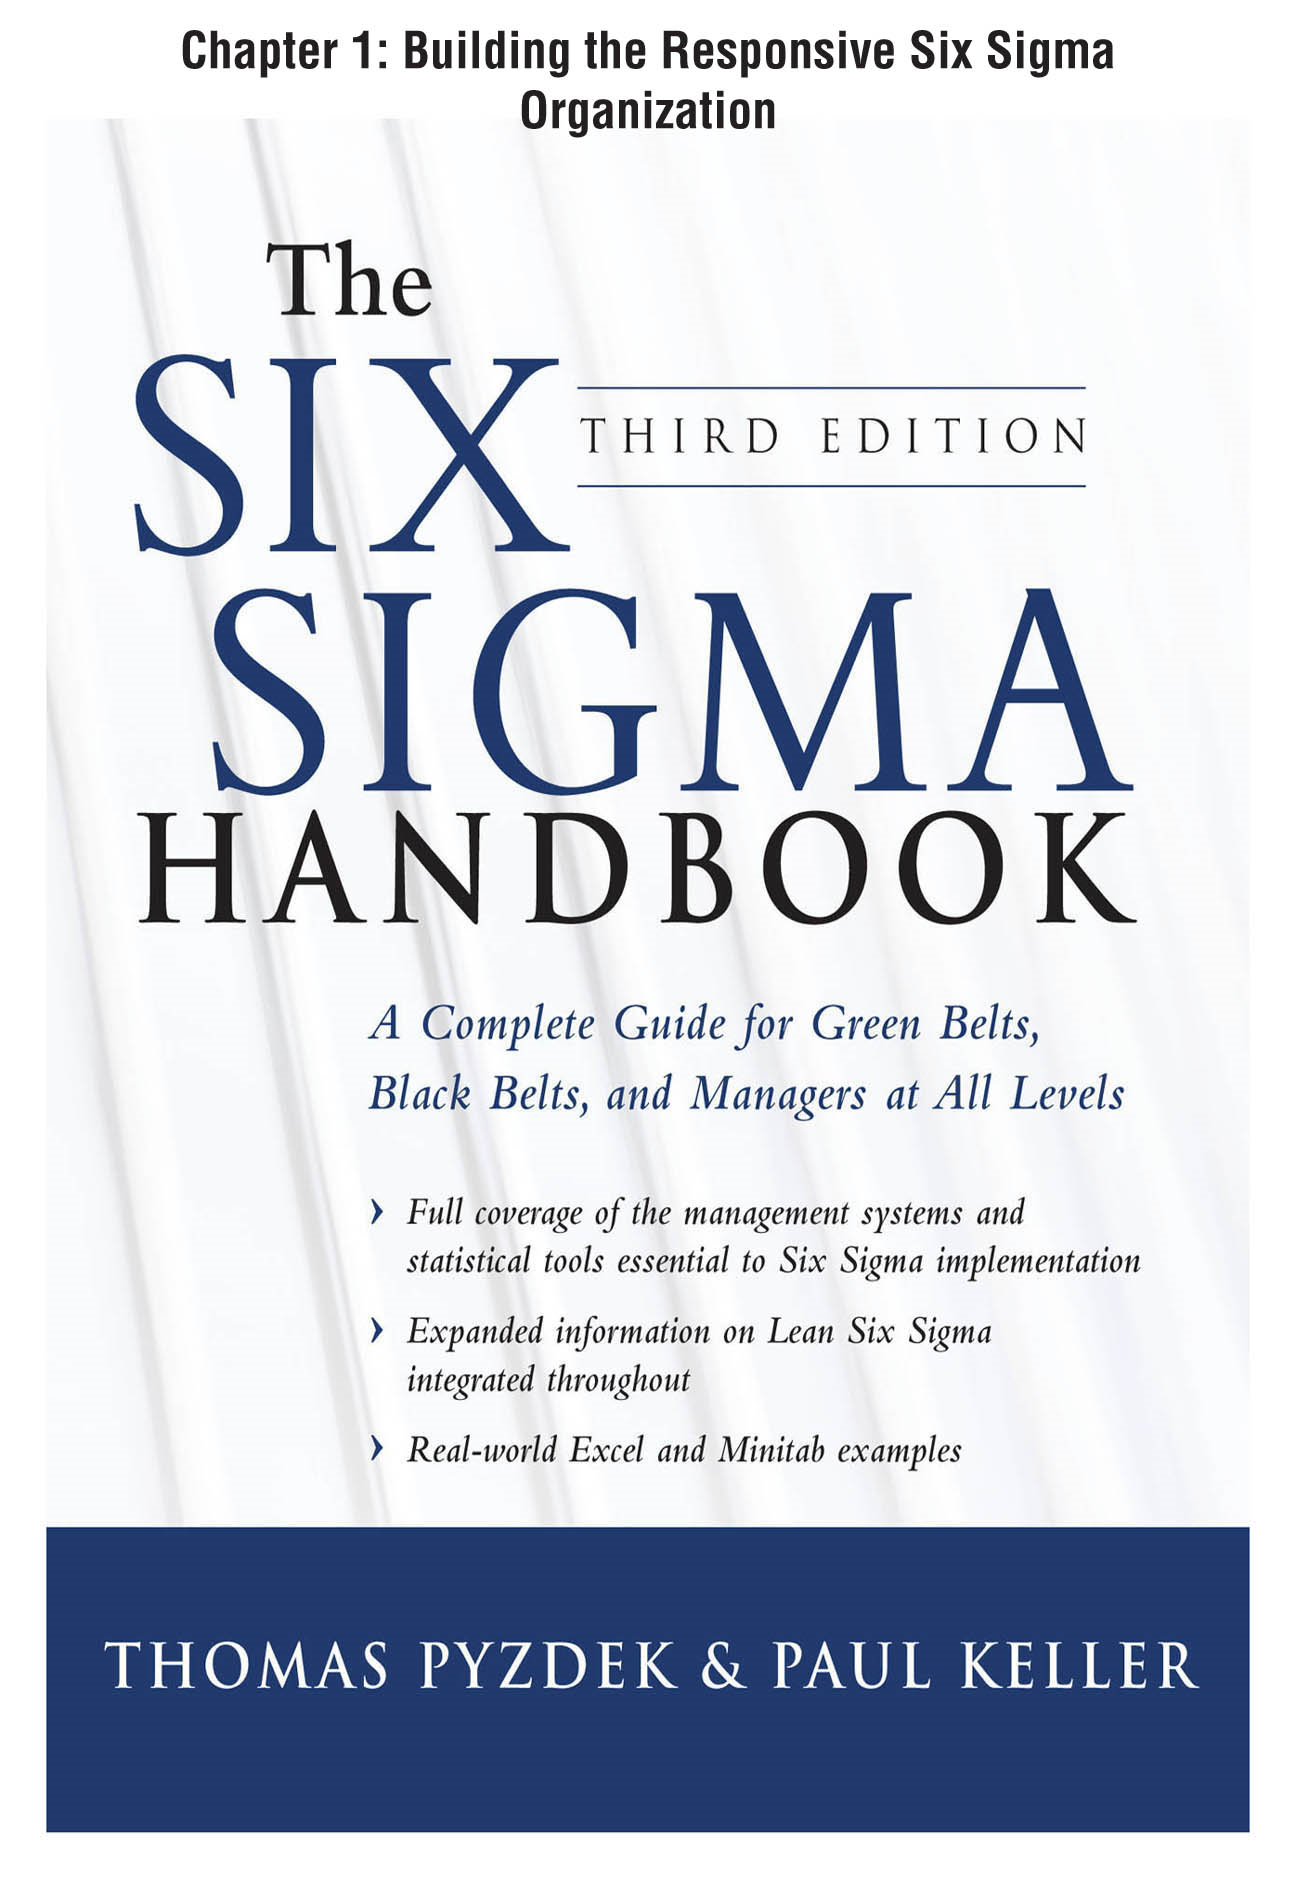 The Six Sigma Handbook, Third Edition, Chapter 1 - Building the Responsive Six Sigma Organization